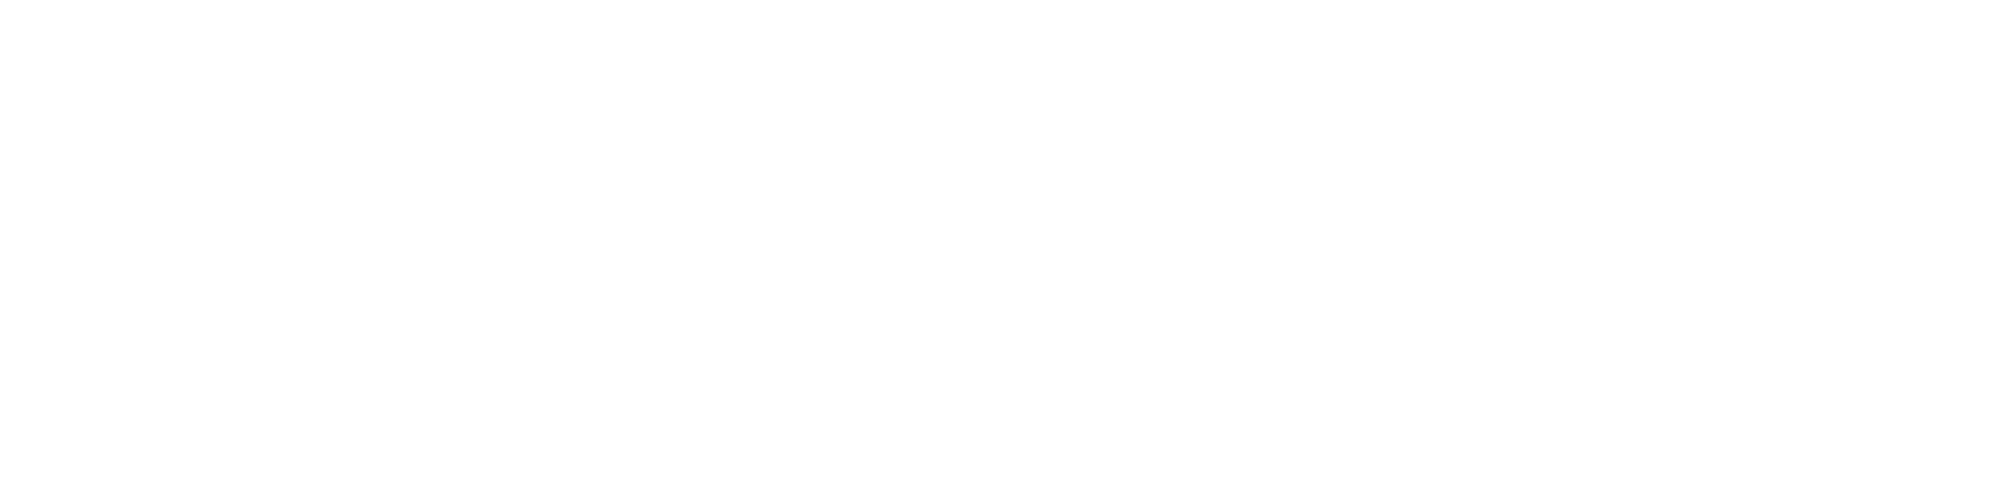 Swiss_Re_2013_logo